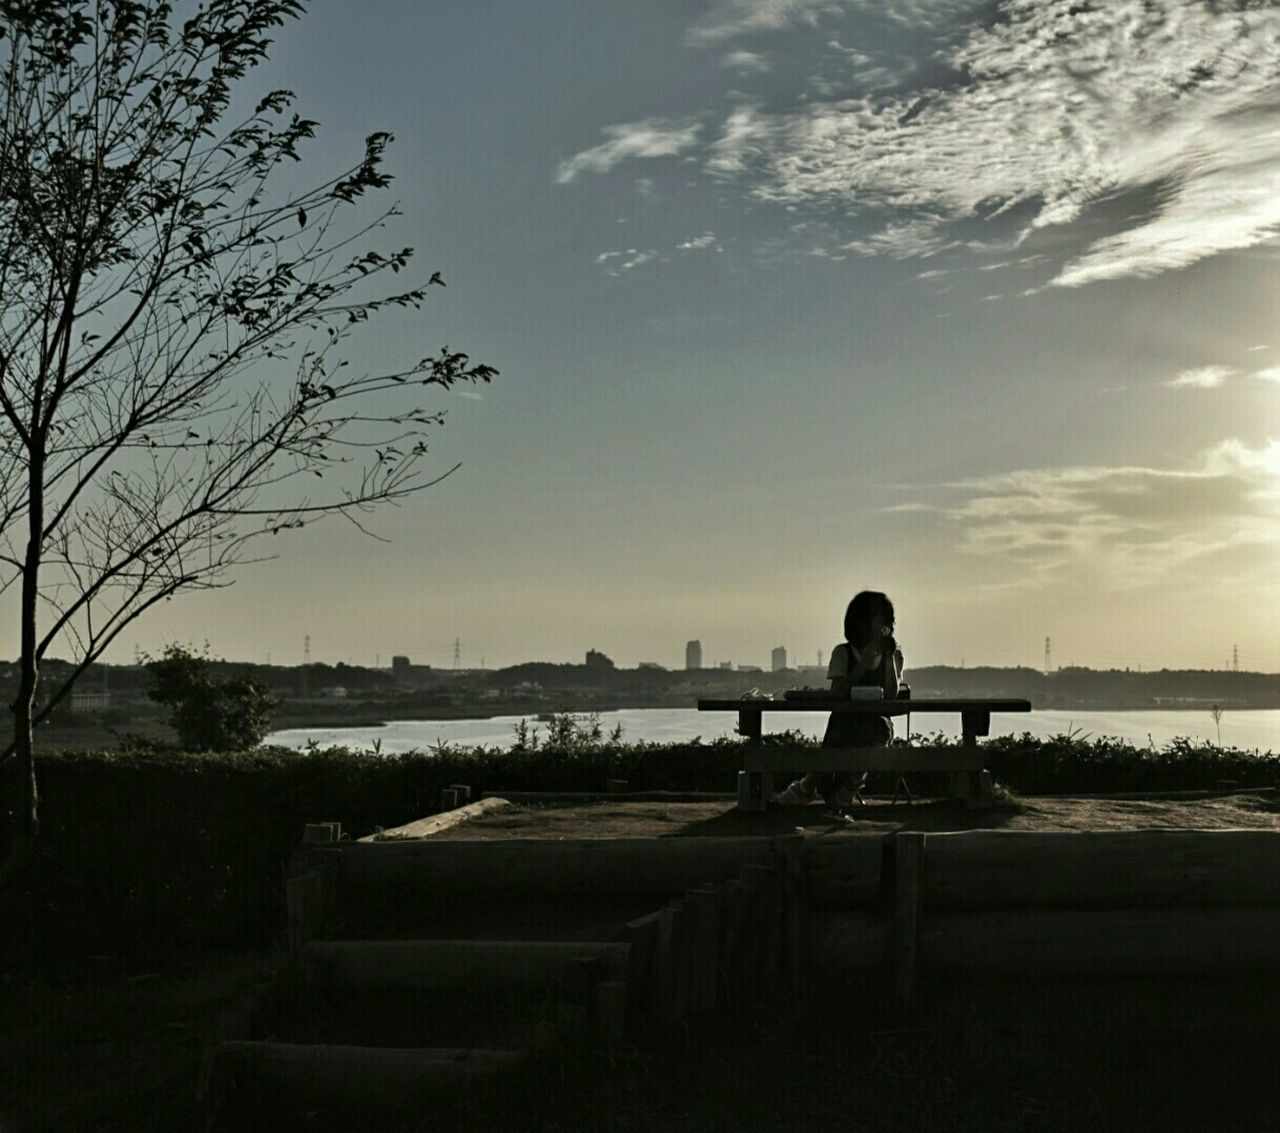 sky, water, sitting, nature, one person, silhouette, real people, tranquil scene, scenics, beauty in nature, river, sunset, outdoors, tranquility, tree, leisure activity, landscape, beach, day, people